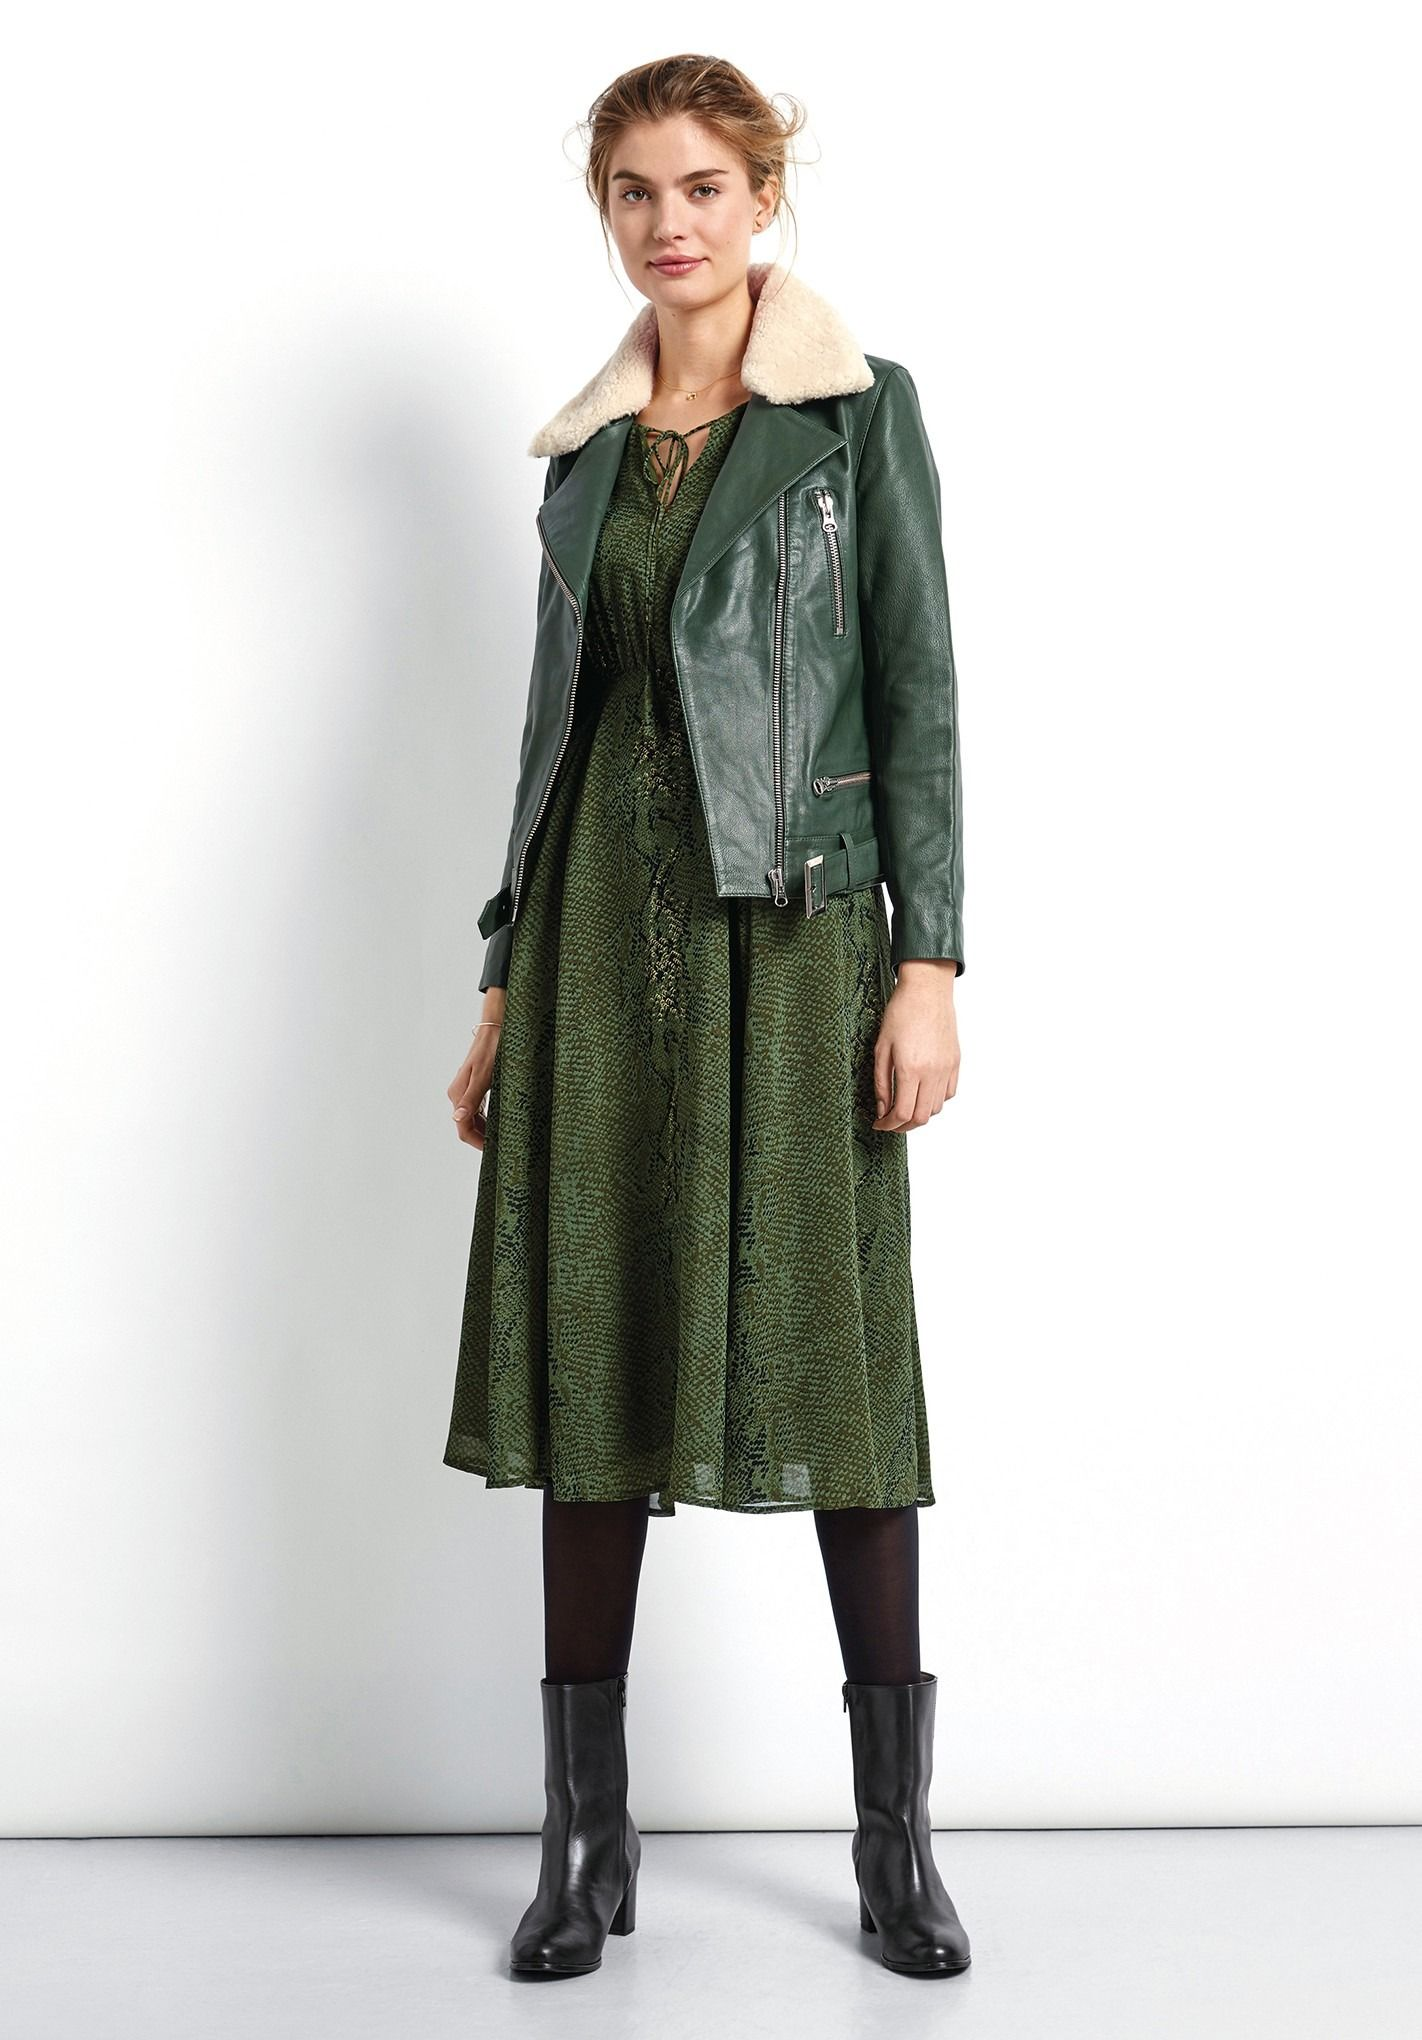 A musthave for winter, this cool forest green leather